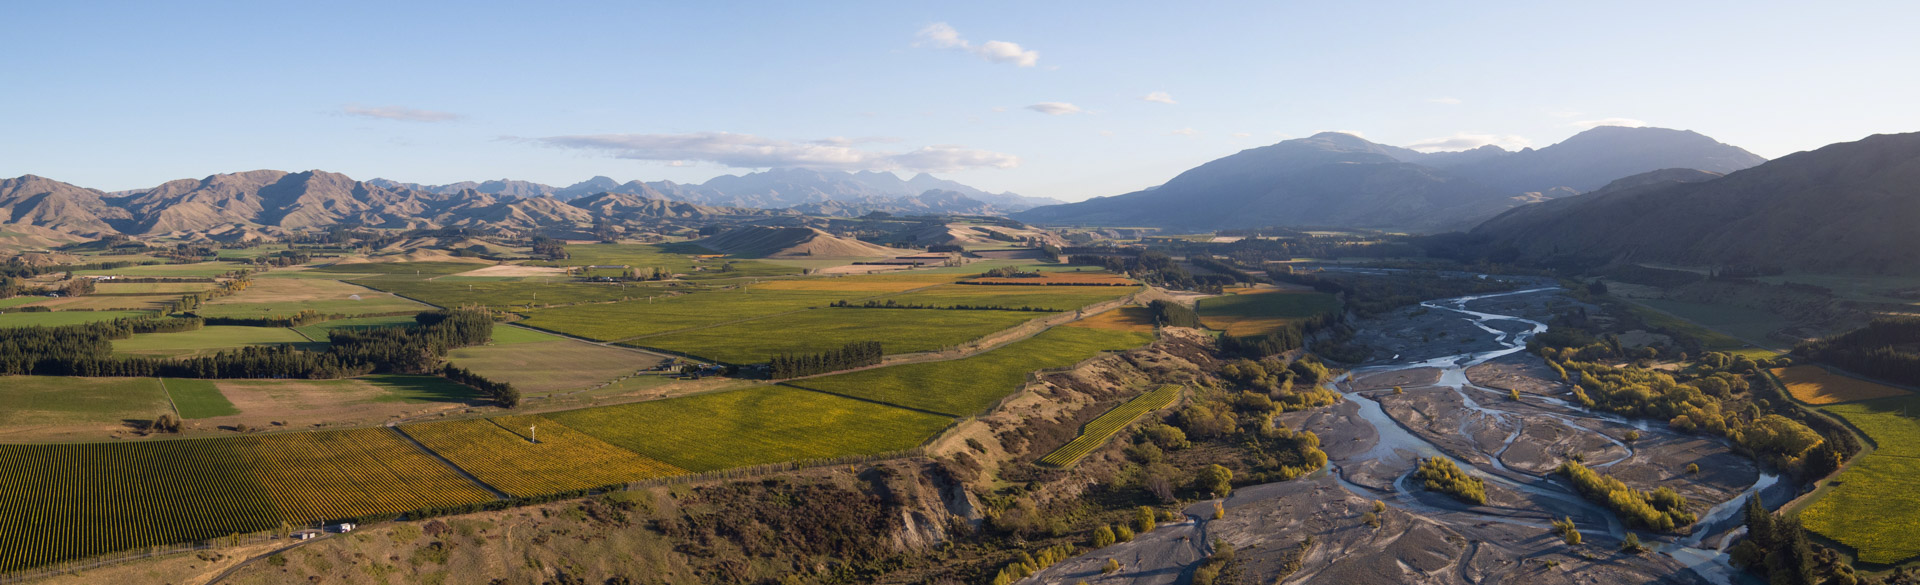 [Group 6]-DJI_0003_DJI_0005-3 images 2.jpg